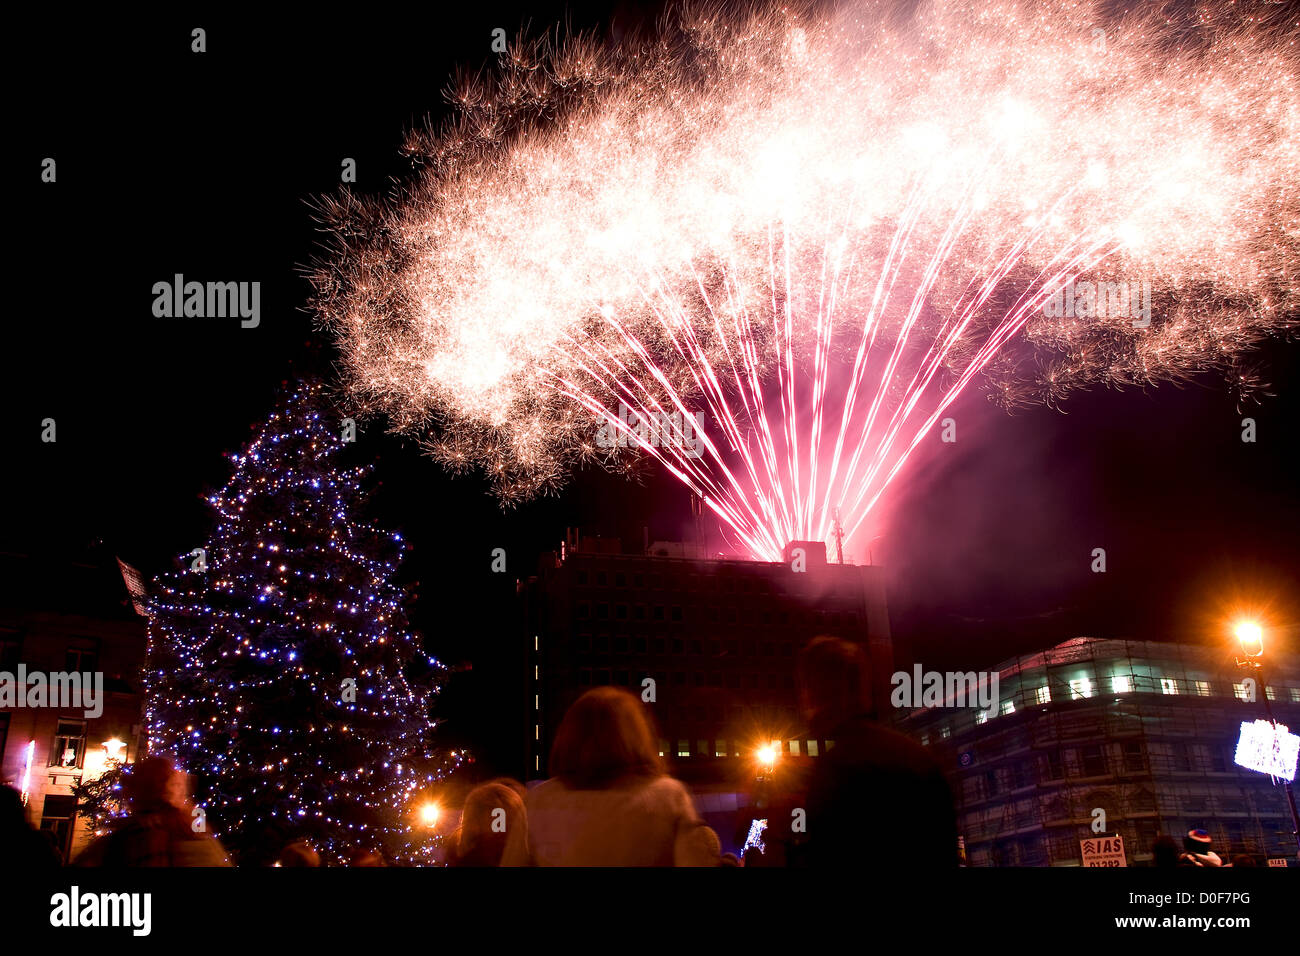 People looking at the Fireworks exploding and filling up the night sky during the Christmas Tree Lights switch on - Stock Image